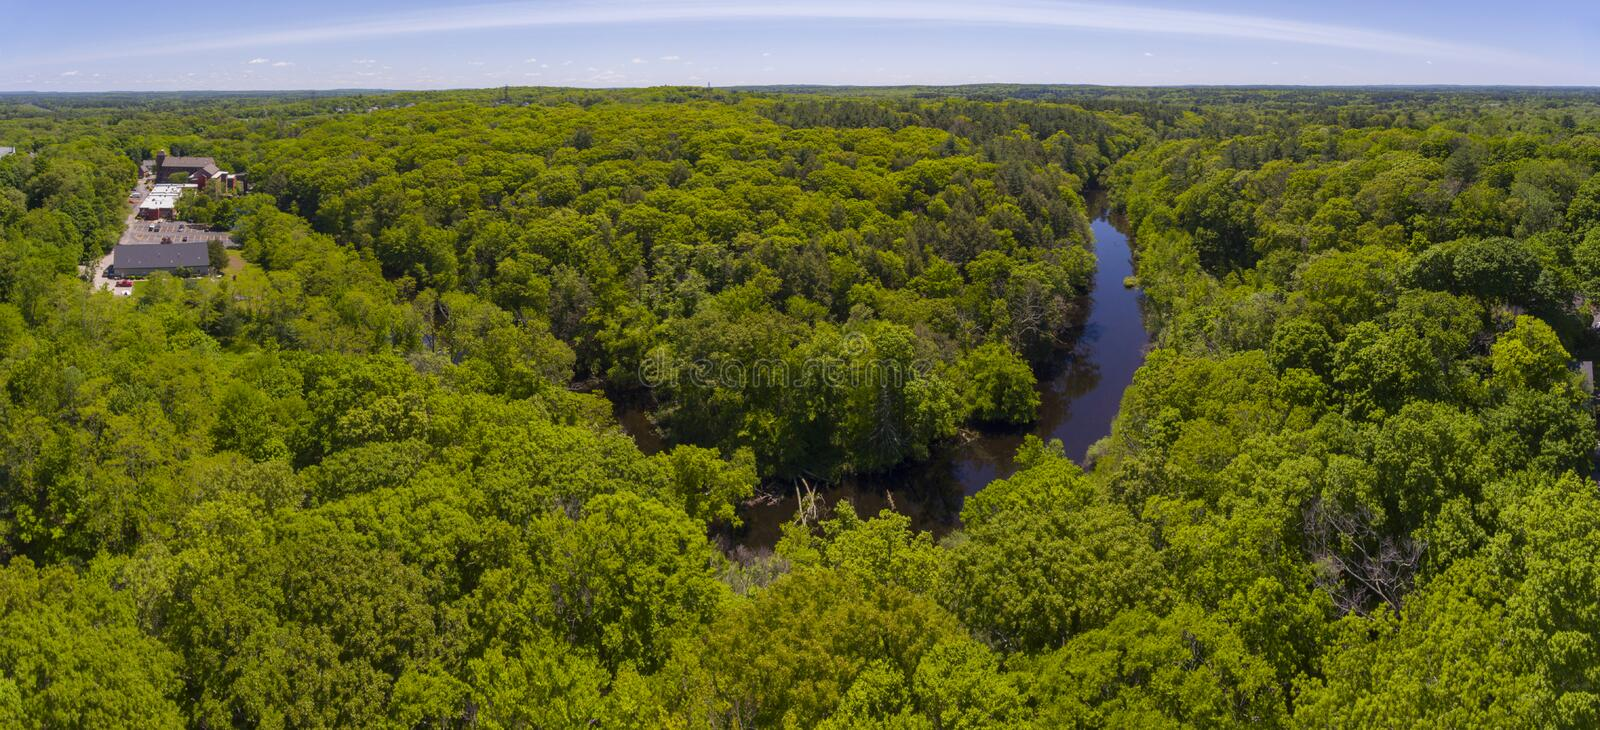 Charles River, Medway, Massachusetts, USA. Bend of Charles River in Medway historic town center in summer, Medway, Boston Metro West area, Massachusetts, USA royalty free stock photos